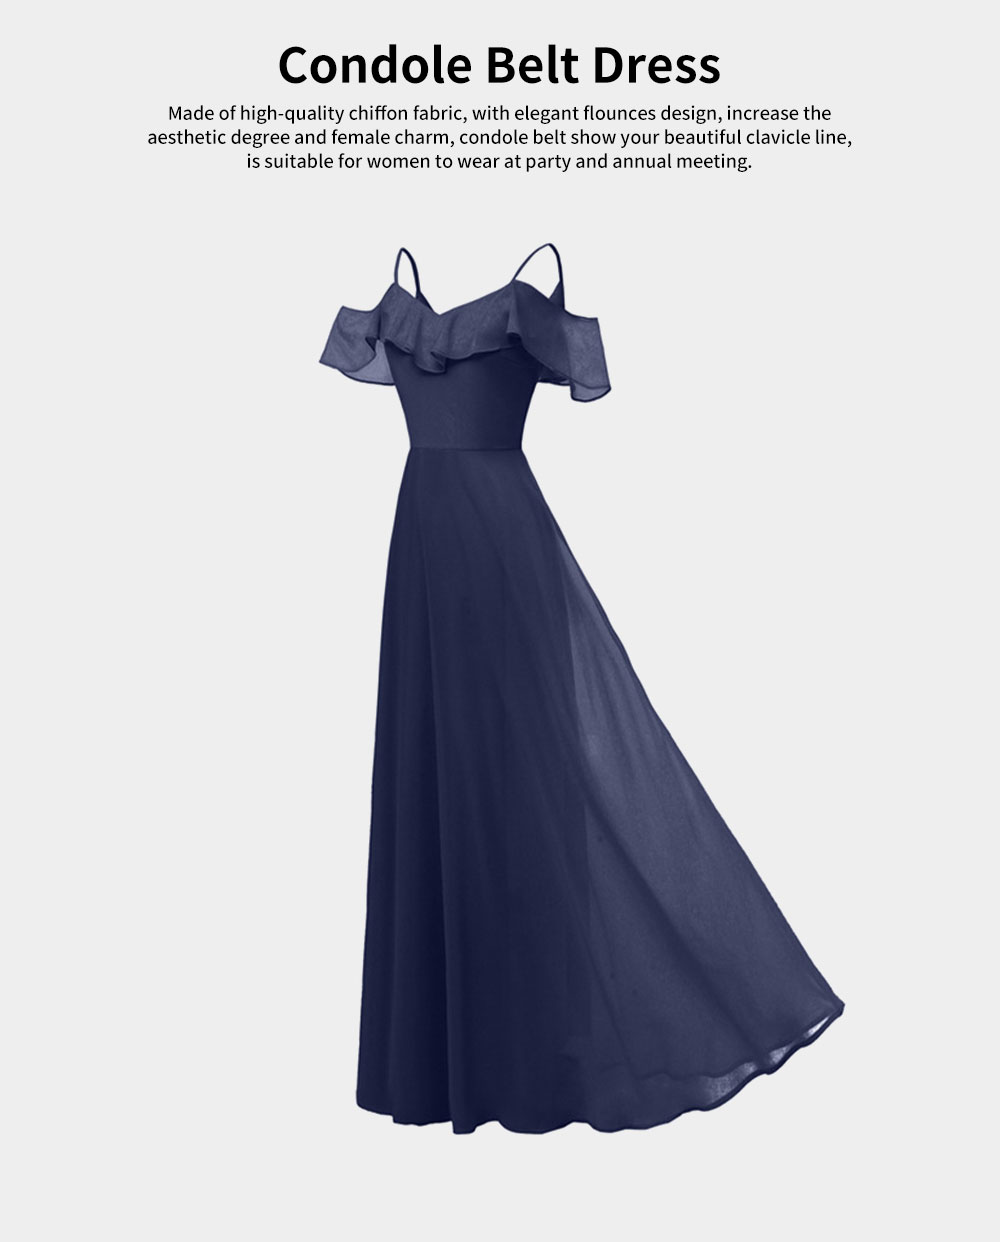 Condole Belt Dress for Women, Elegant Flounces Long Skirt, Classic Color Chiffon Sexy Annual Meeting Dresses 0